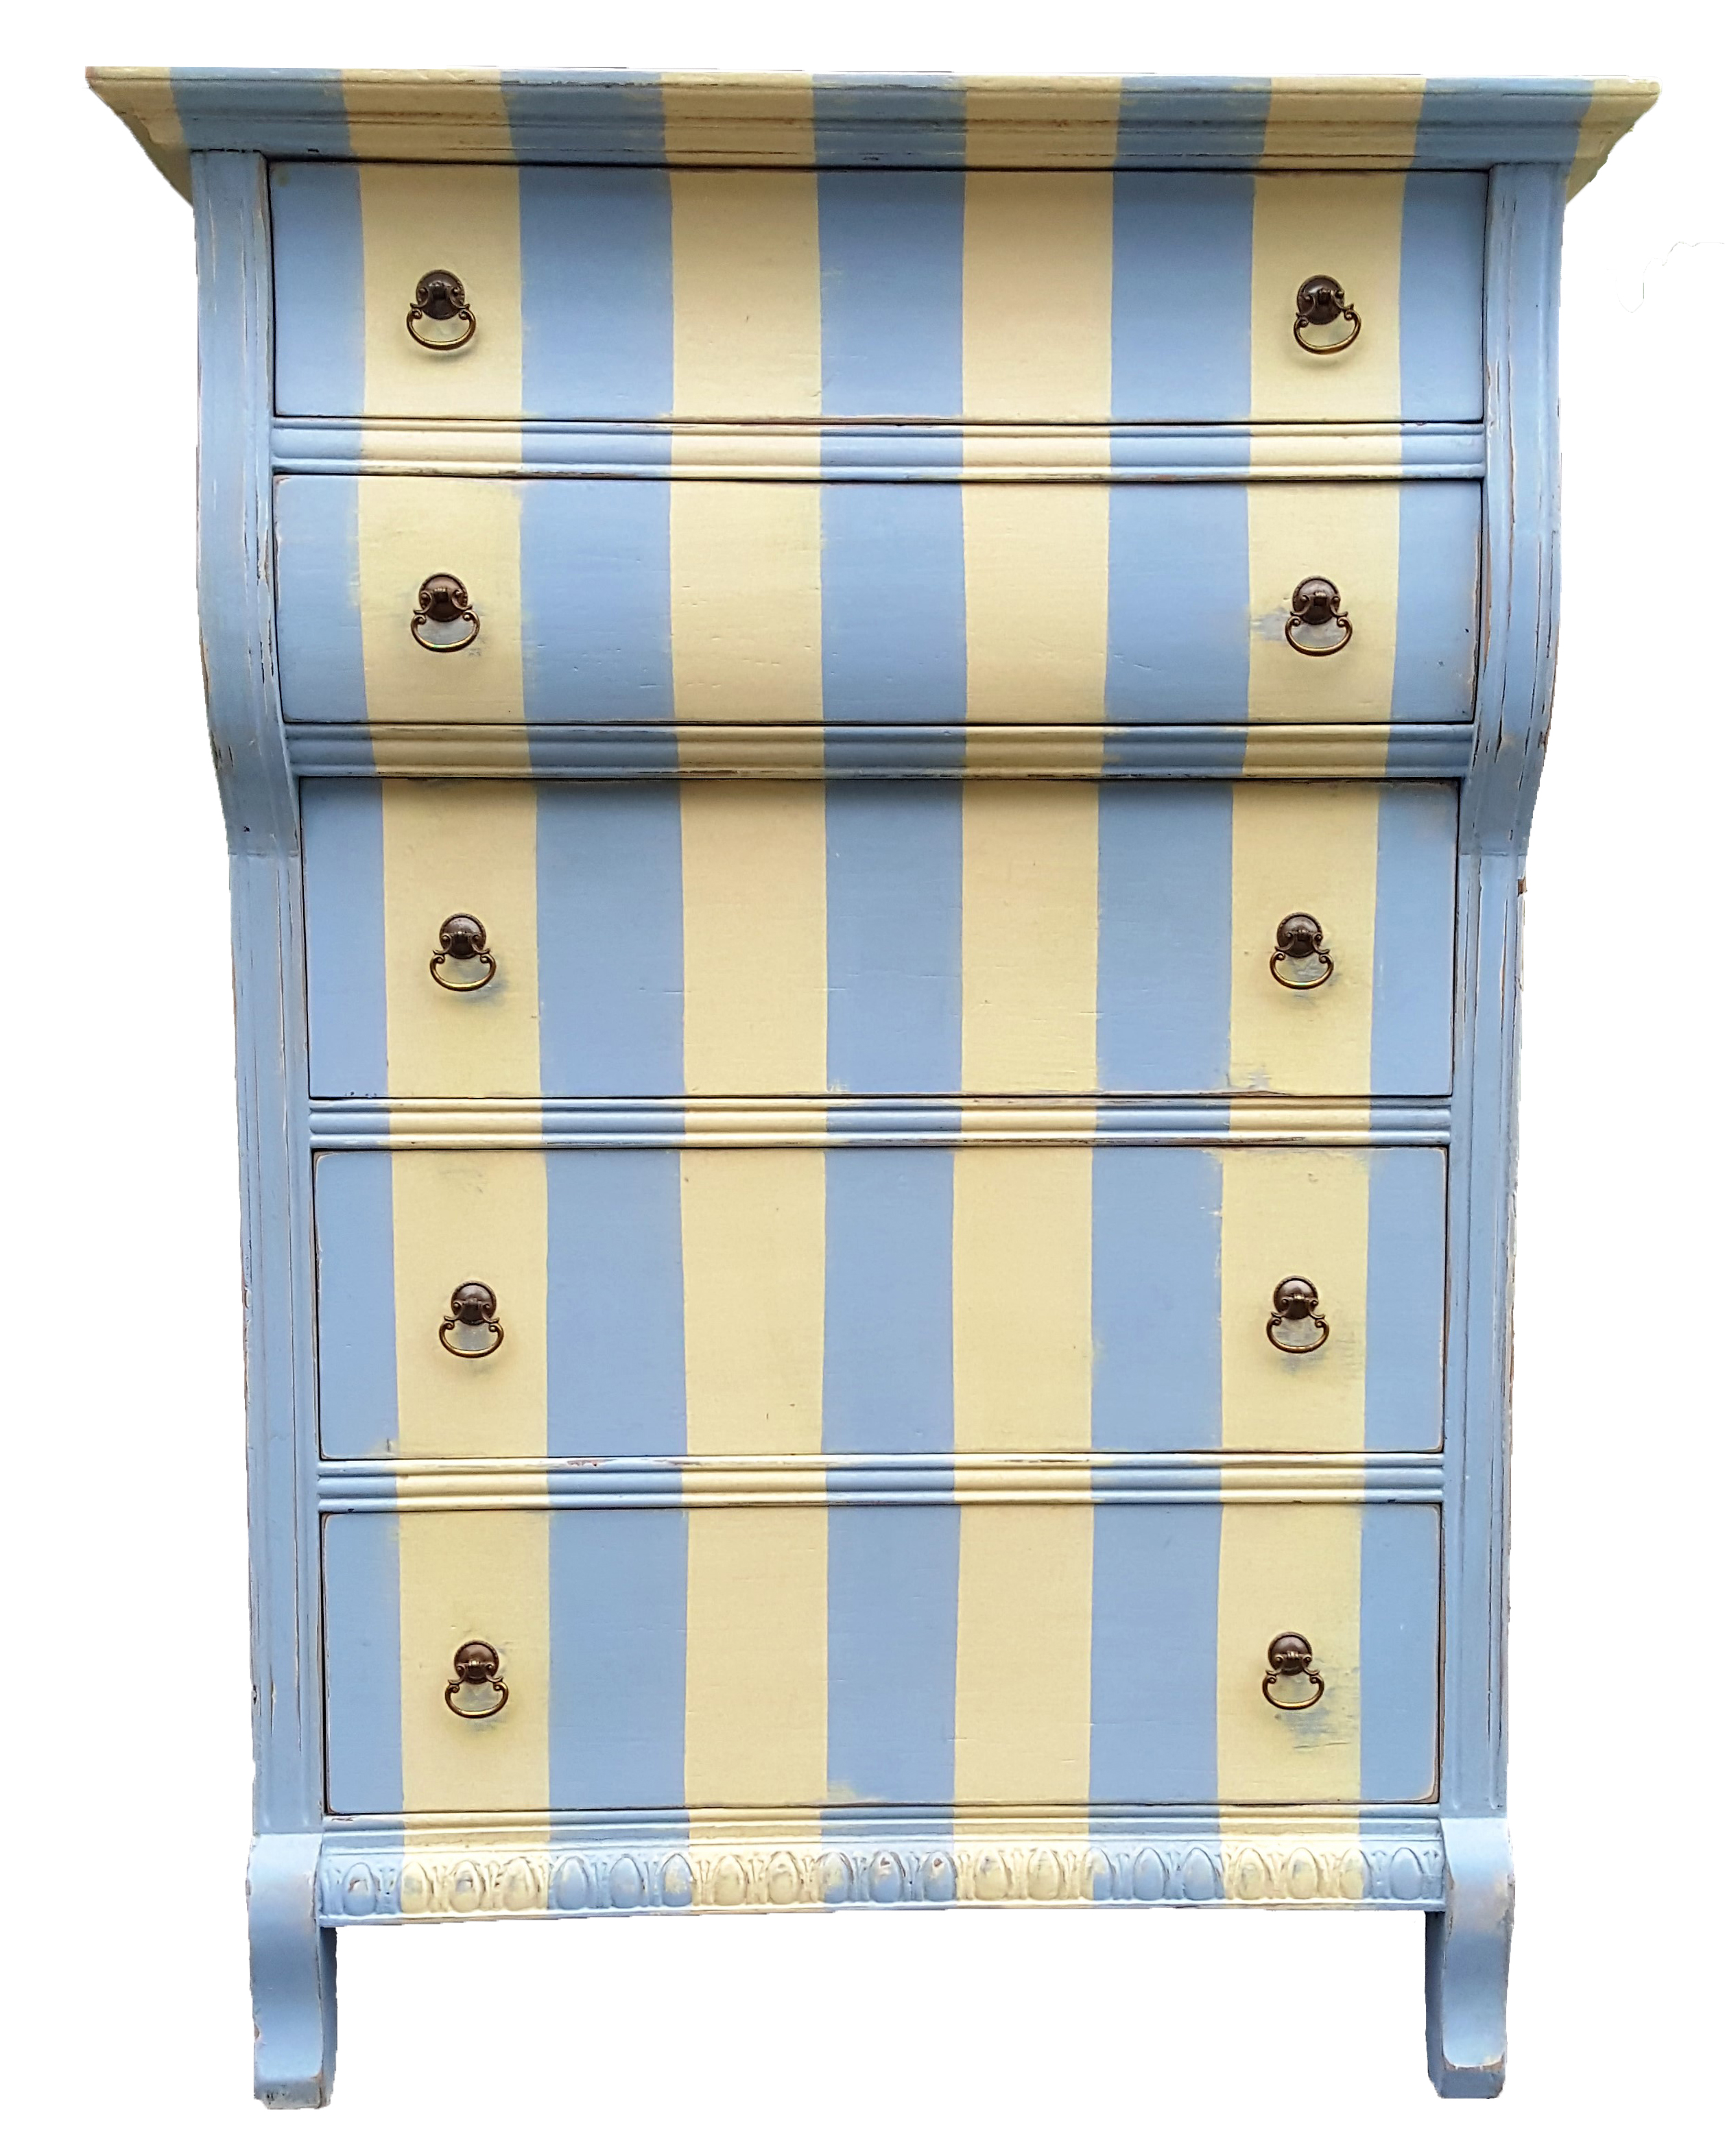 321-blue-yellow-striped-dresser-front-1.jpg